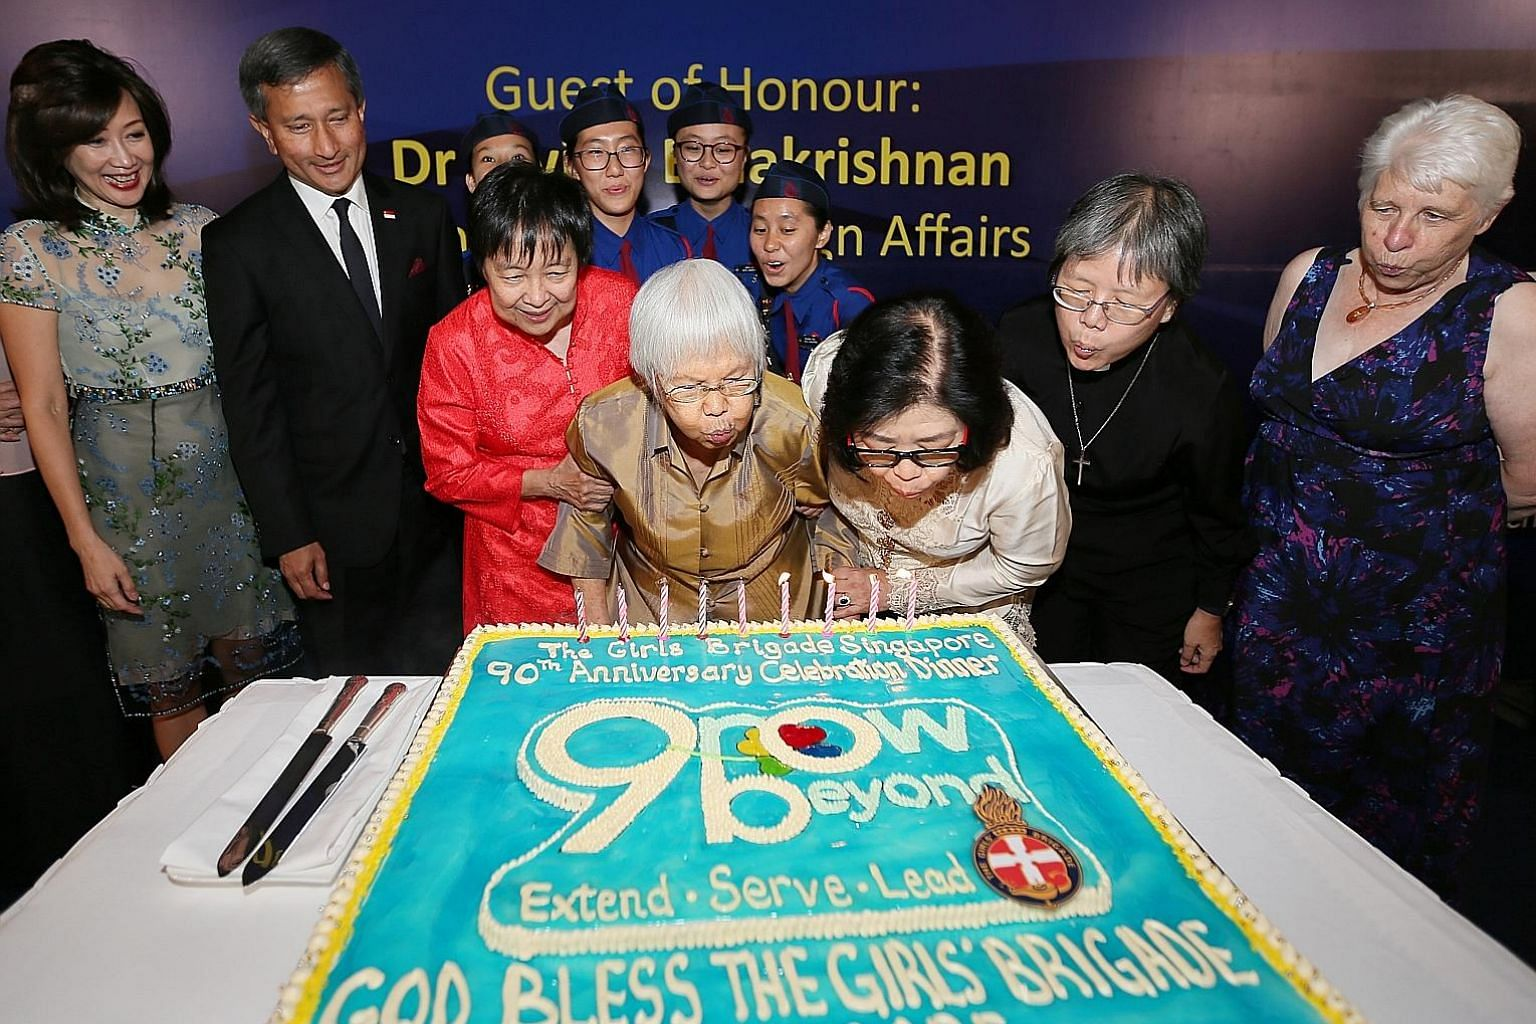 (From far left) Mrs Joy Balakrishnan, Dr Vivian Balakrishnan, Ms Hee Piang Chin, Mrs Tay Poh Luan, Girls' Brigade (GB) Singapore president Sally Chew, GB Singapore chaplain Reverend Lilian Ang and GB international president Vivienne Aitchison, with G